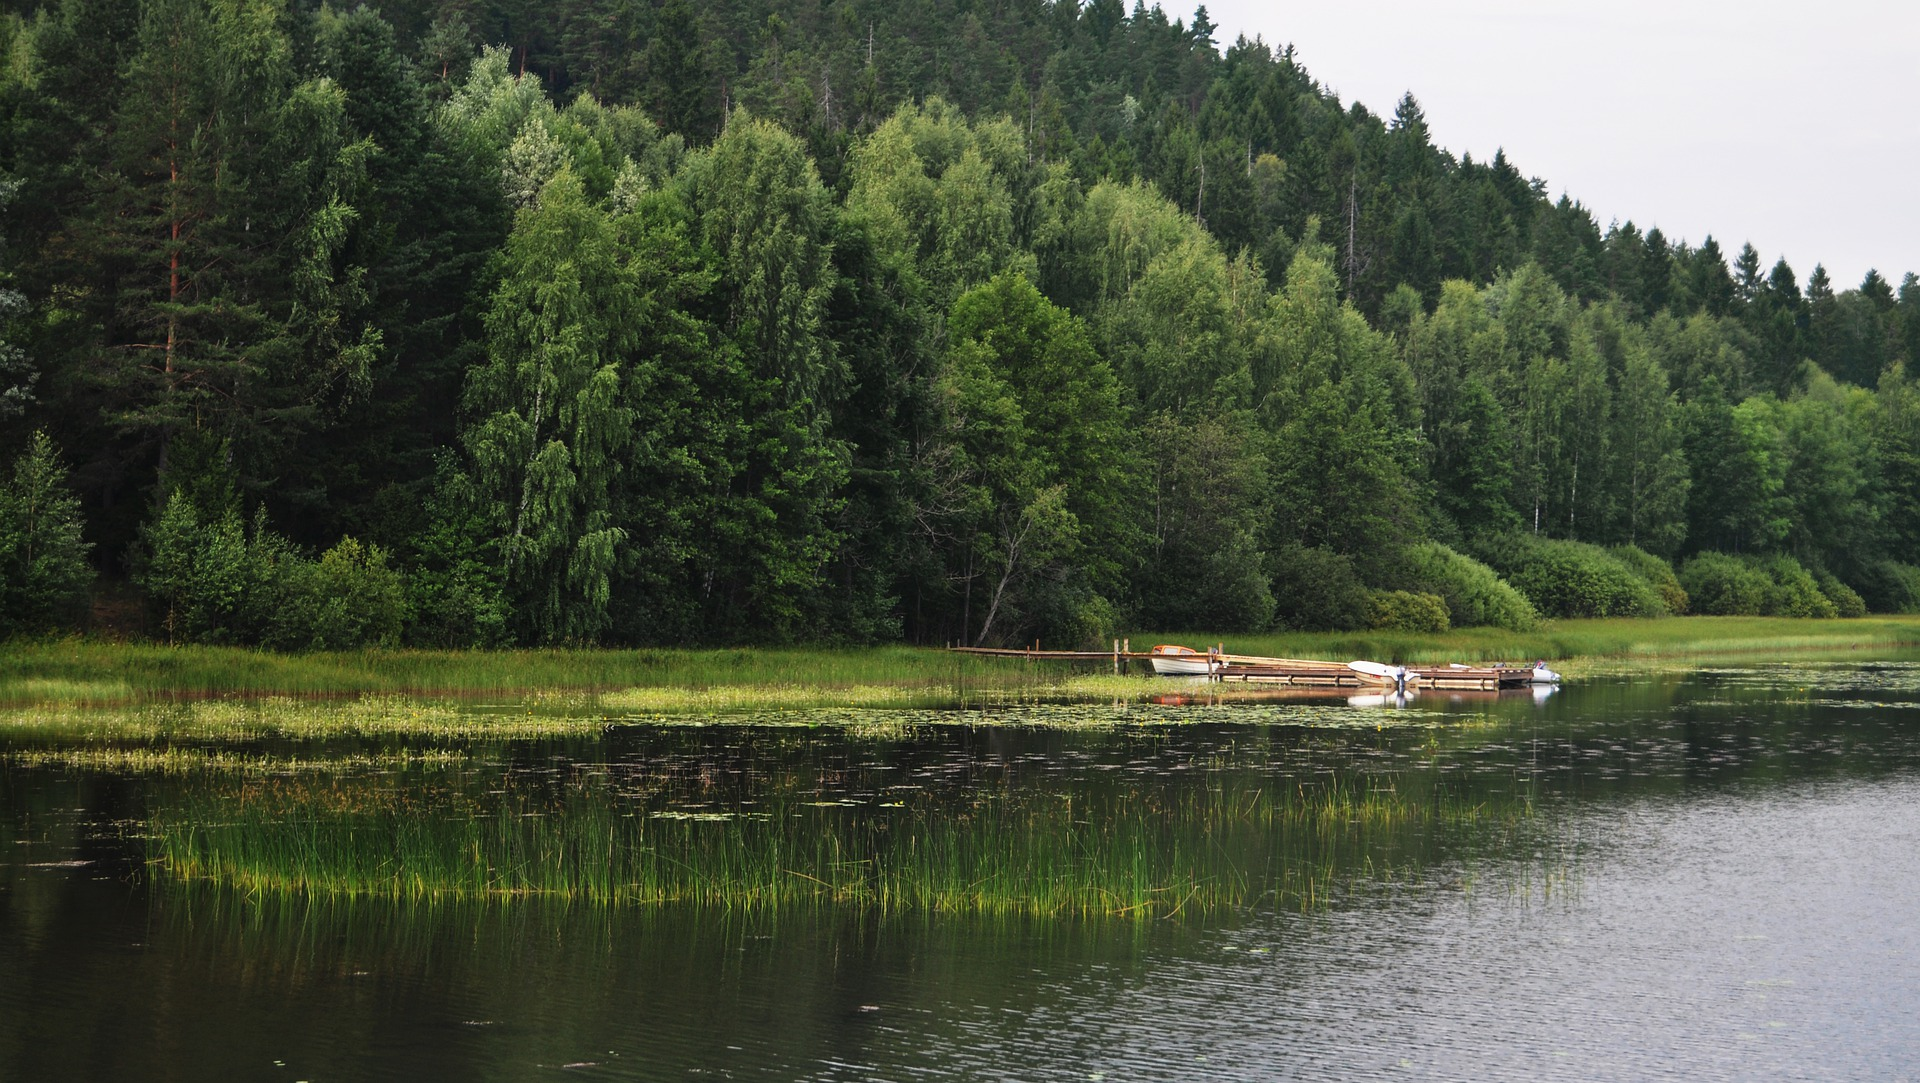 landscape of a lake and trees